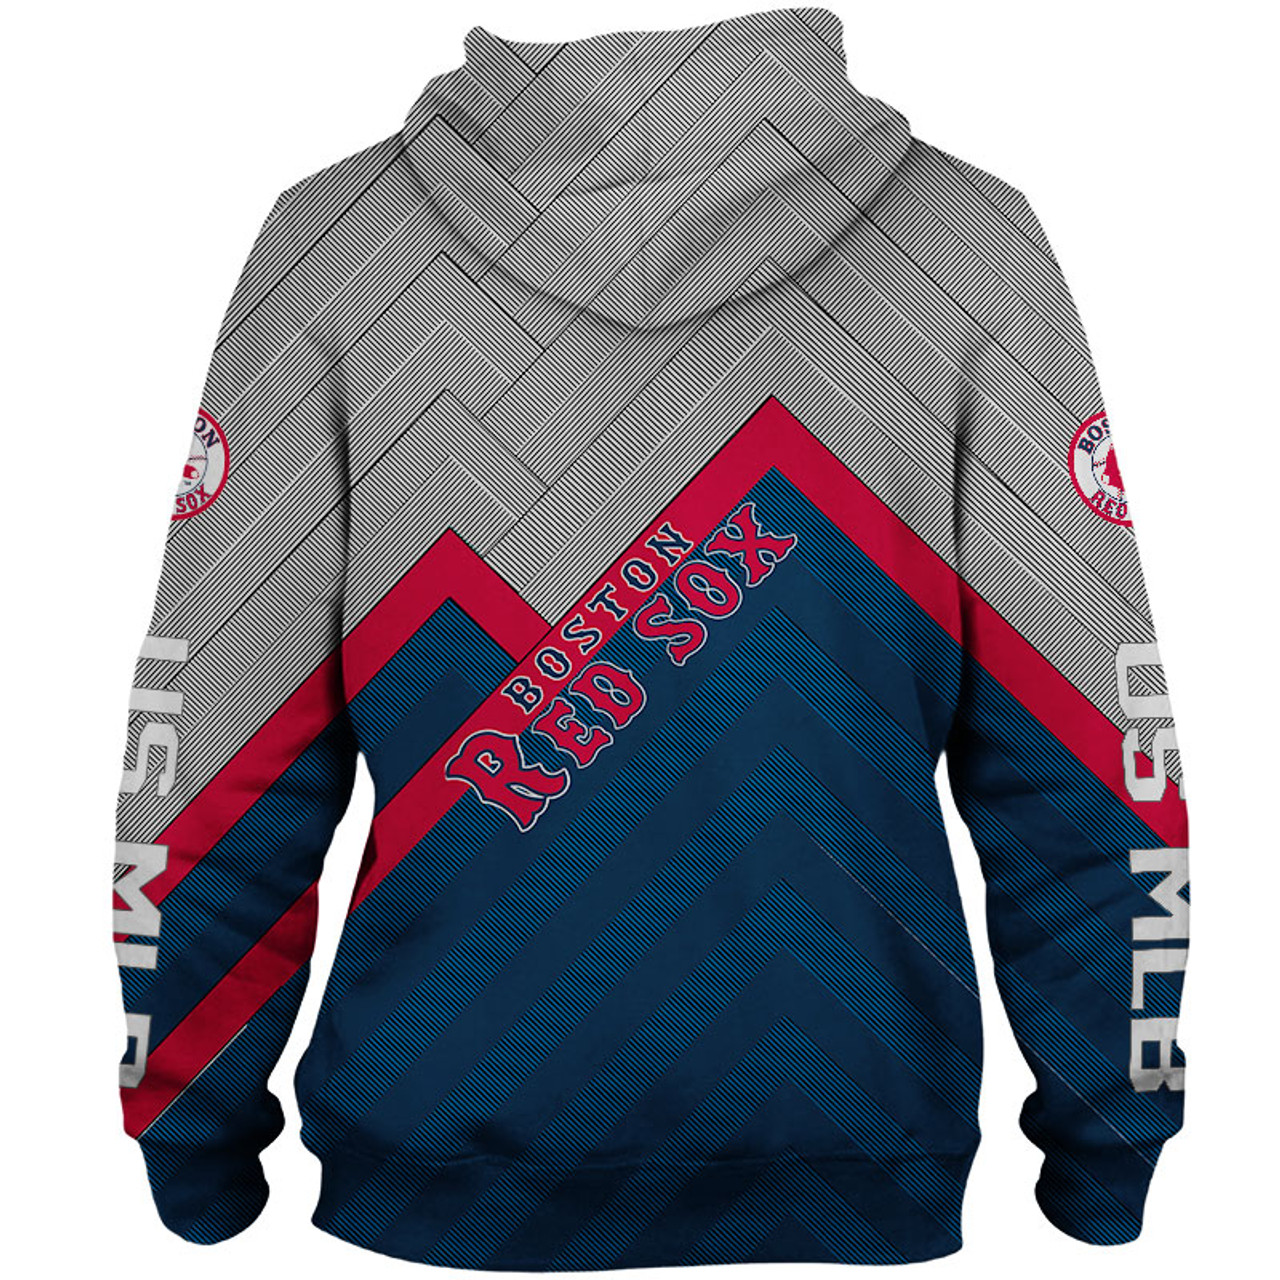 **(OFFICIAL-M.L.B.BOSTON-RED-SOXS-TEAM-PULLOVER-HOODIES/CUSTOM-DETAILED-3D-GRAPHIC-PRINTED/PREMIUM-ALL-OVER-DOUBLE-SIDED-PRINT/OFFICIAL-RED-SOXS-TEAM-COLORS & CLASSIC-RED-SOXS-3D-GRAPHIC-LOGOS/WARM-NEW-PREMIUM-PULLOVER-POCKET-M.L.B.HOODIES)**